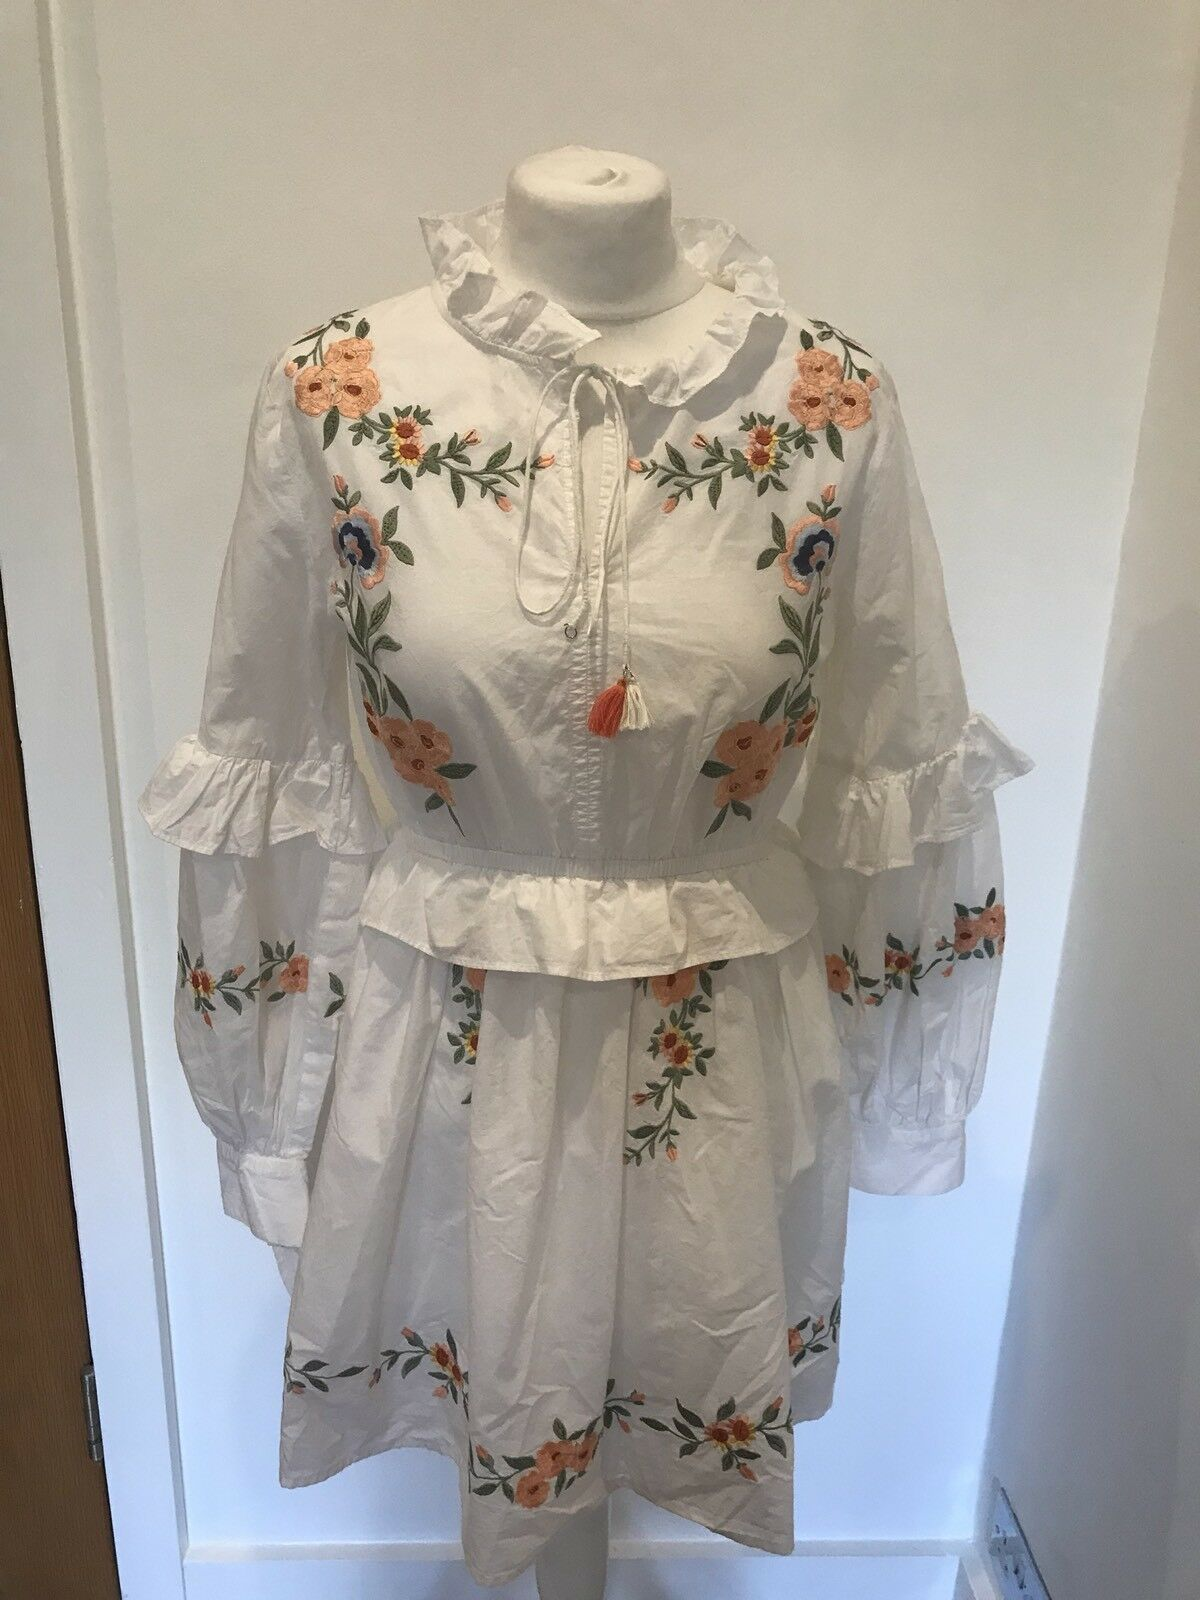 Gorgeous Miss Selfridge White Floral Embroidered Boho Dress Worn Once